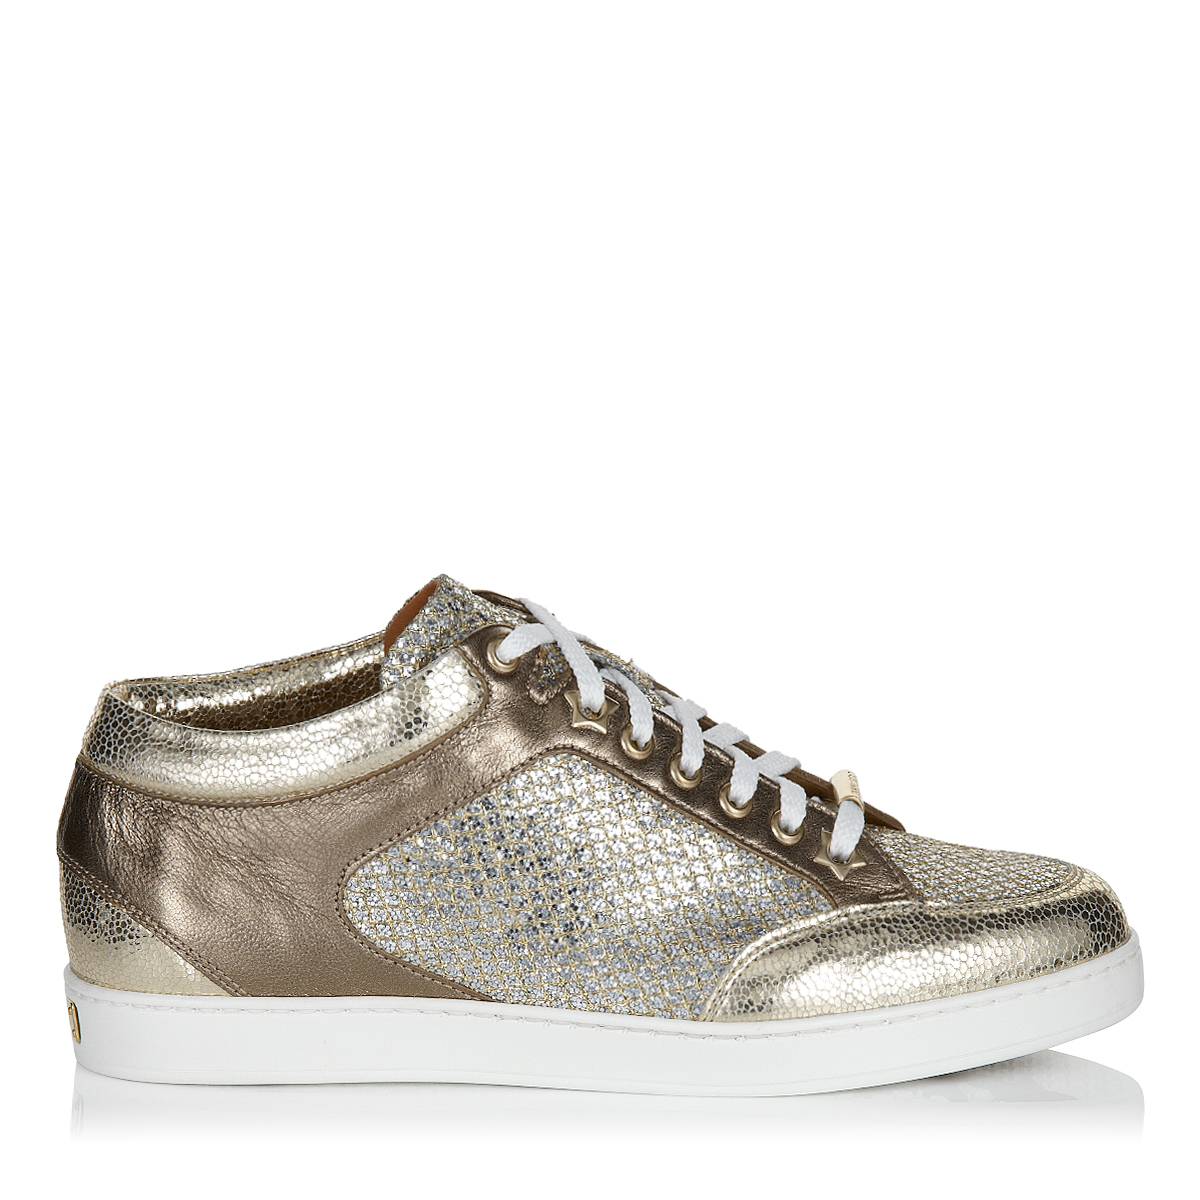 MIAMI Champagne Glitter Fabric and Metallic Nappa Sneakers by Jimmy Choo